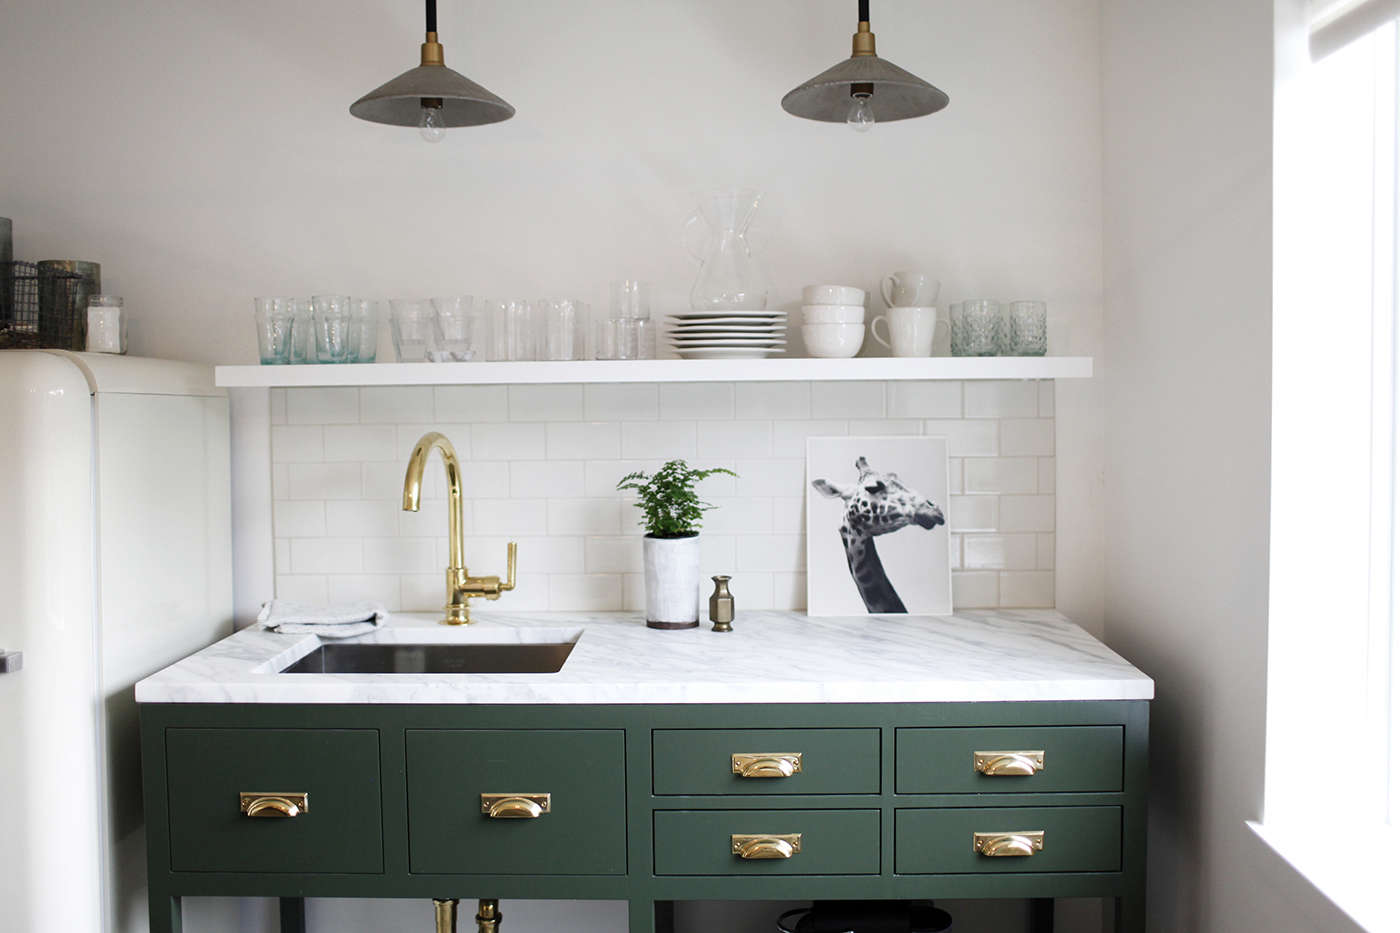 A petite kitchen with a repurposed marble slab, salvaged from an earlier project. SeeKitchen of the Week: A Before & After Office Rental in Seattle.